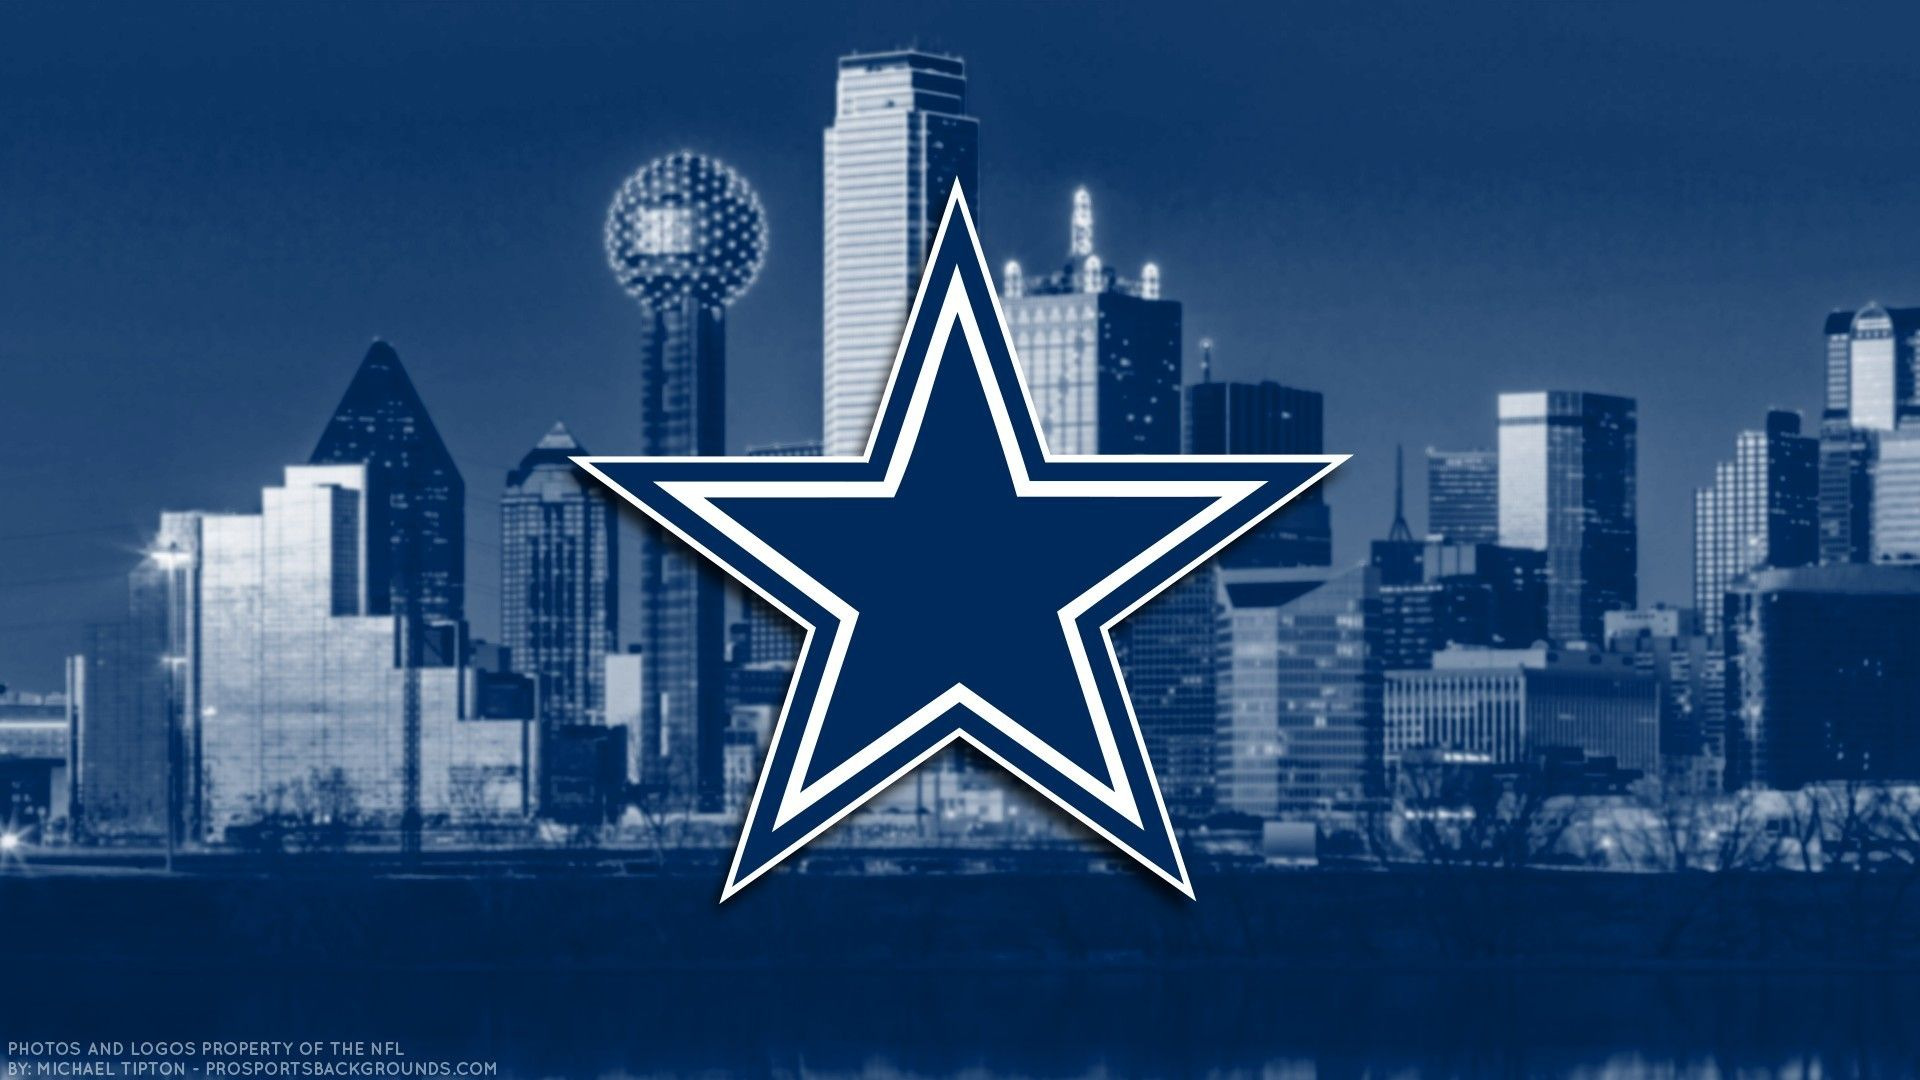 Dallas Cowboys screen savers change every year. This is